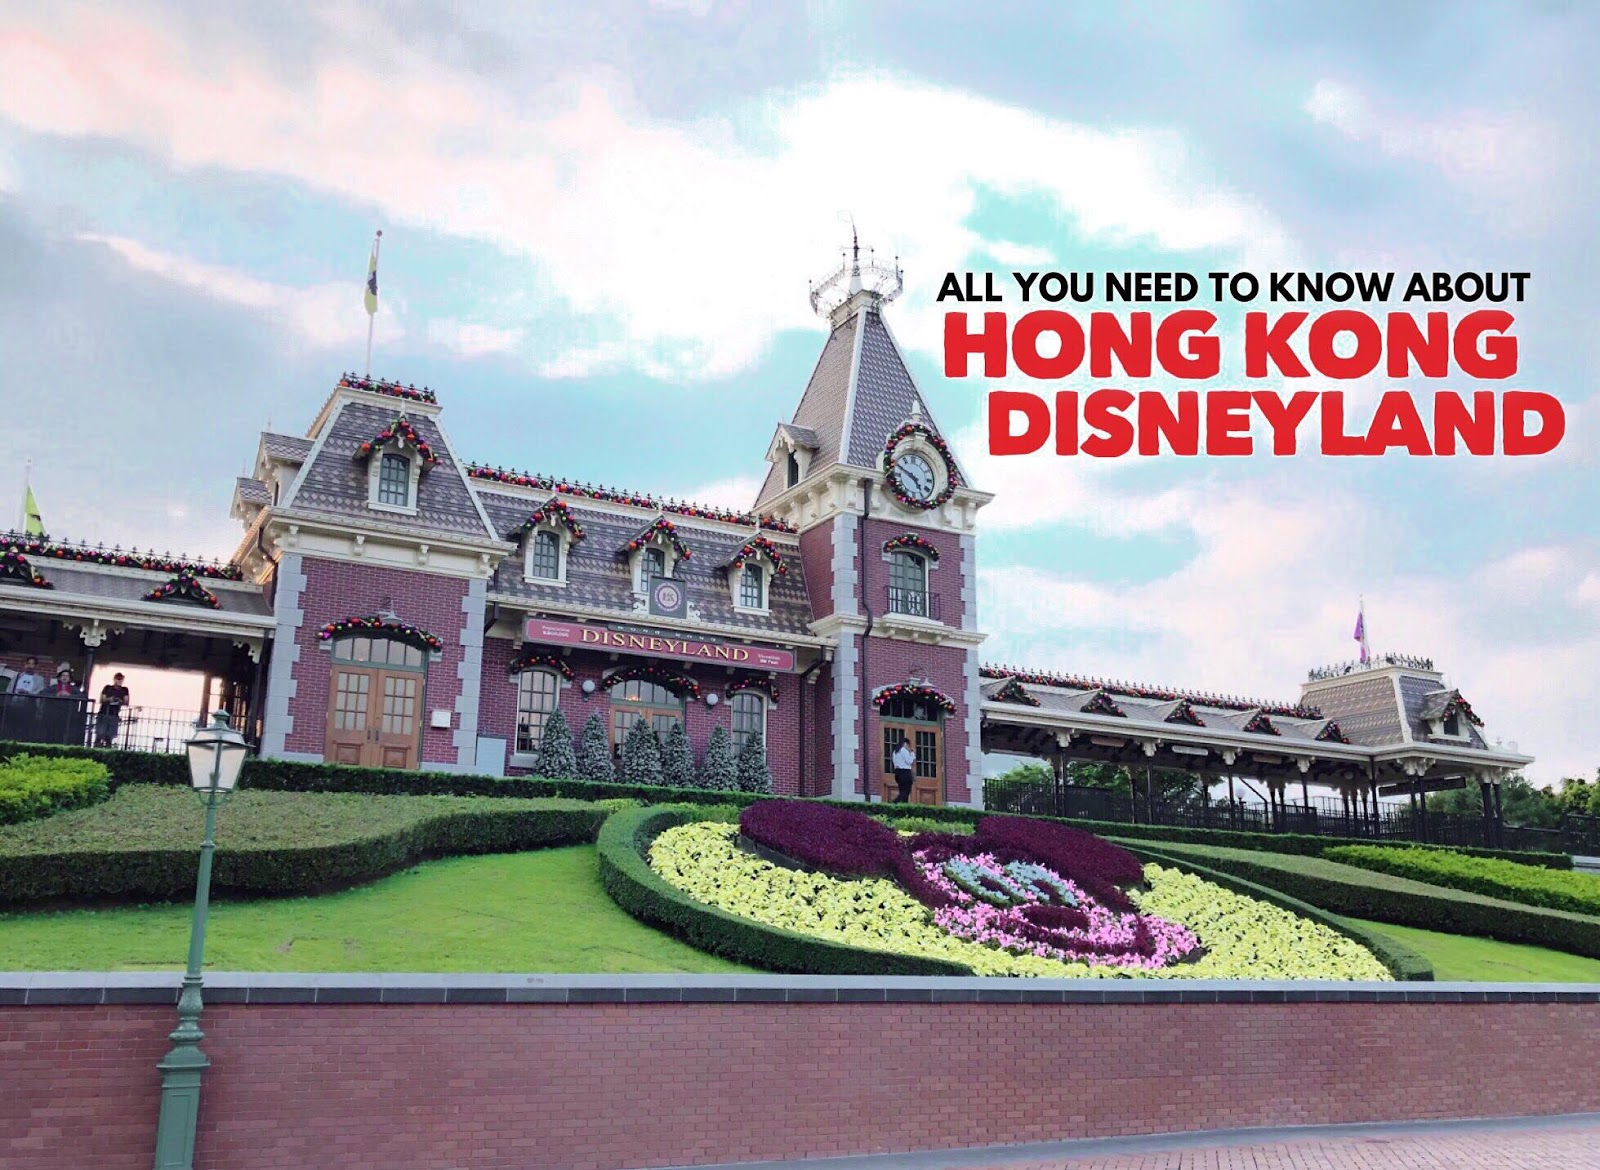 HONG KONG DISNEYLAND Cheap Tickets & Travel Guide Blog 2020 with ...